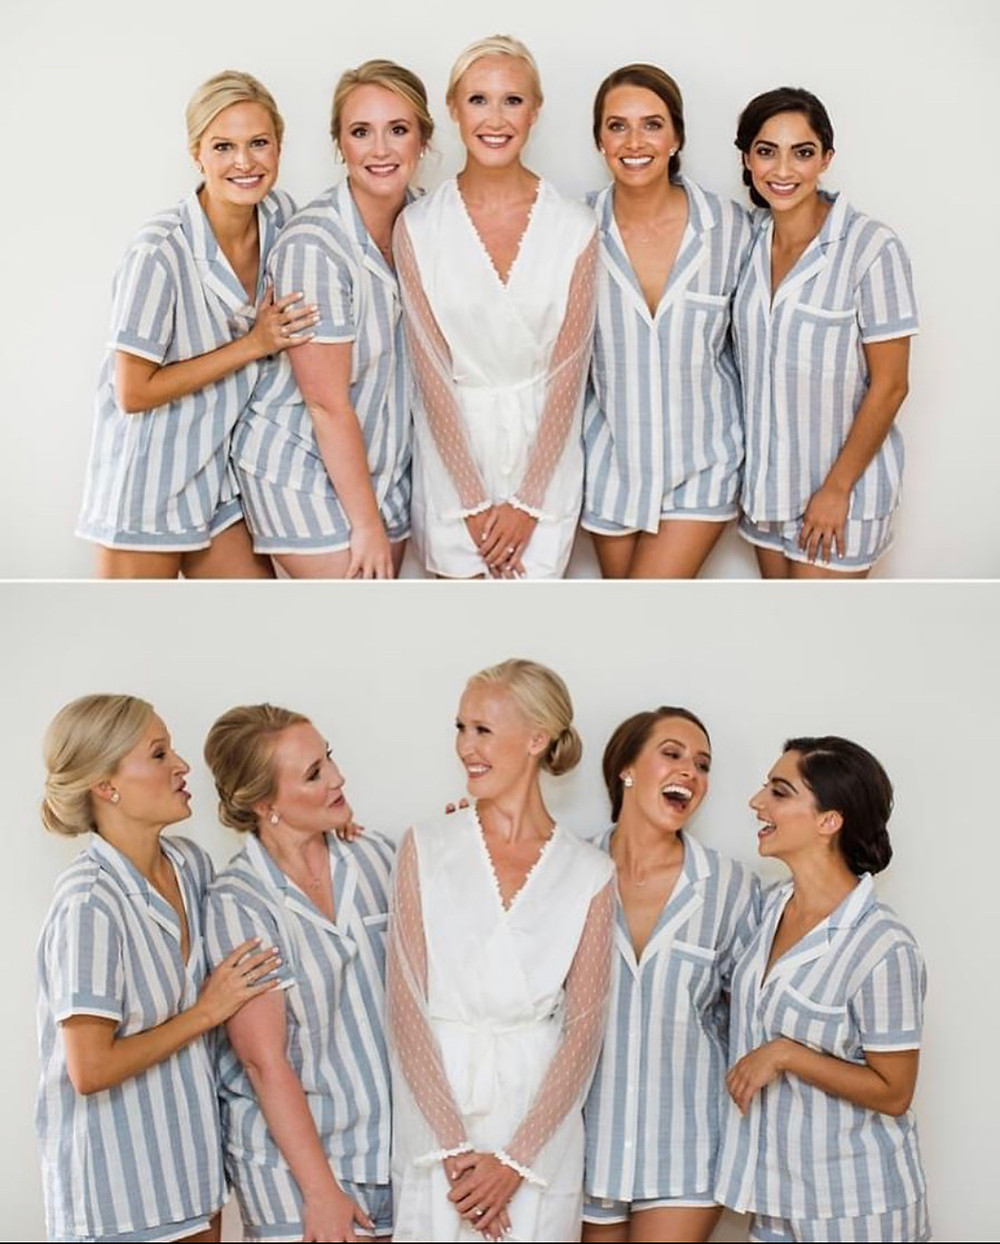 When all the girls get together it is sure to be a blast!  Waking up together, eating breakfast, hanging out in your hotel room or home...what else can you ask for??!!  Goode Beauty hair and makeup team bring everything you can dream of to help the bride and all of her bridesmaids feel as beautiful as possible.  All you have to do is sit back, laugh, breathe and take in the moment.